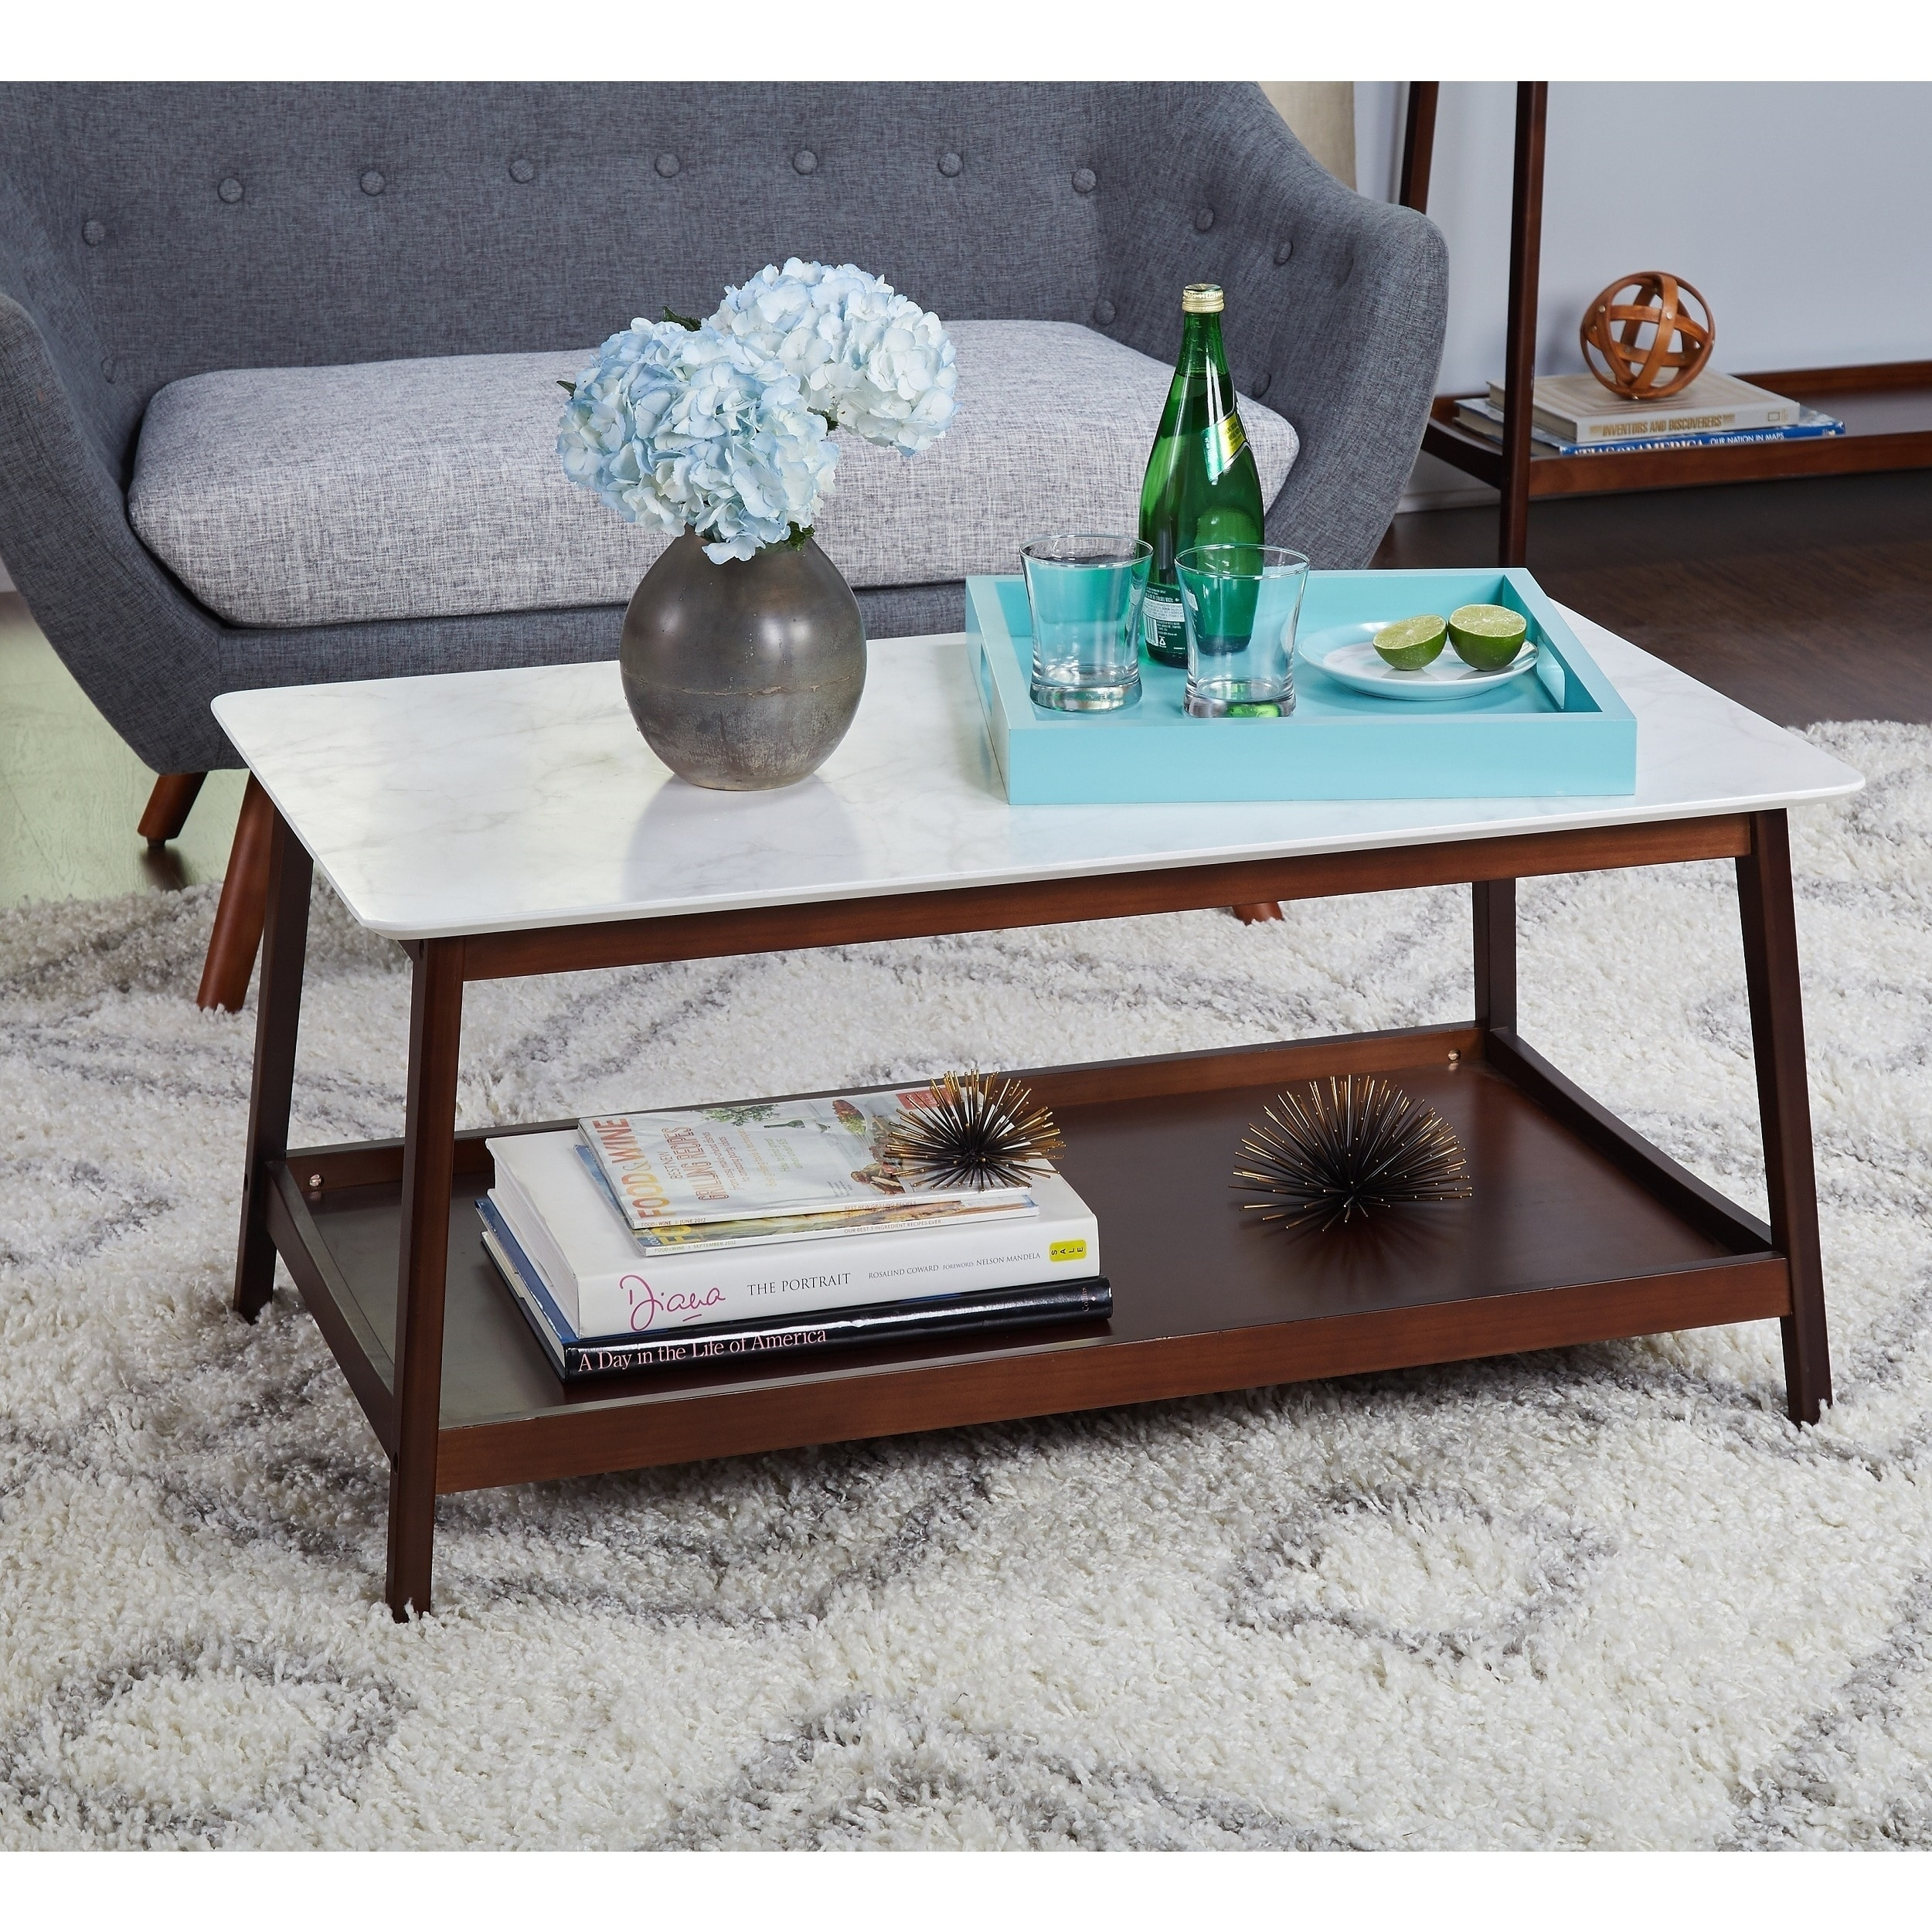 Shop Simple Living Jhovies Coffee Table - On Sale - Free Shipping pertaining to Element Ivory Rectangular Coffee Tables (Image 26 of 30)